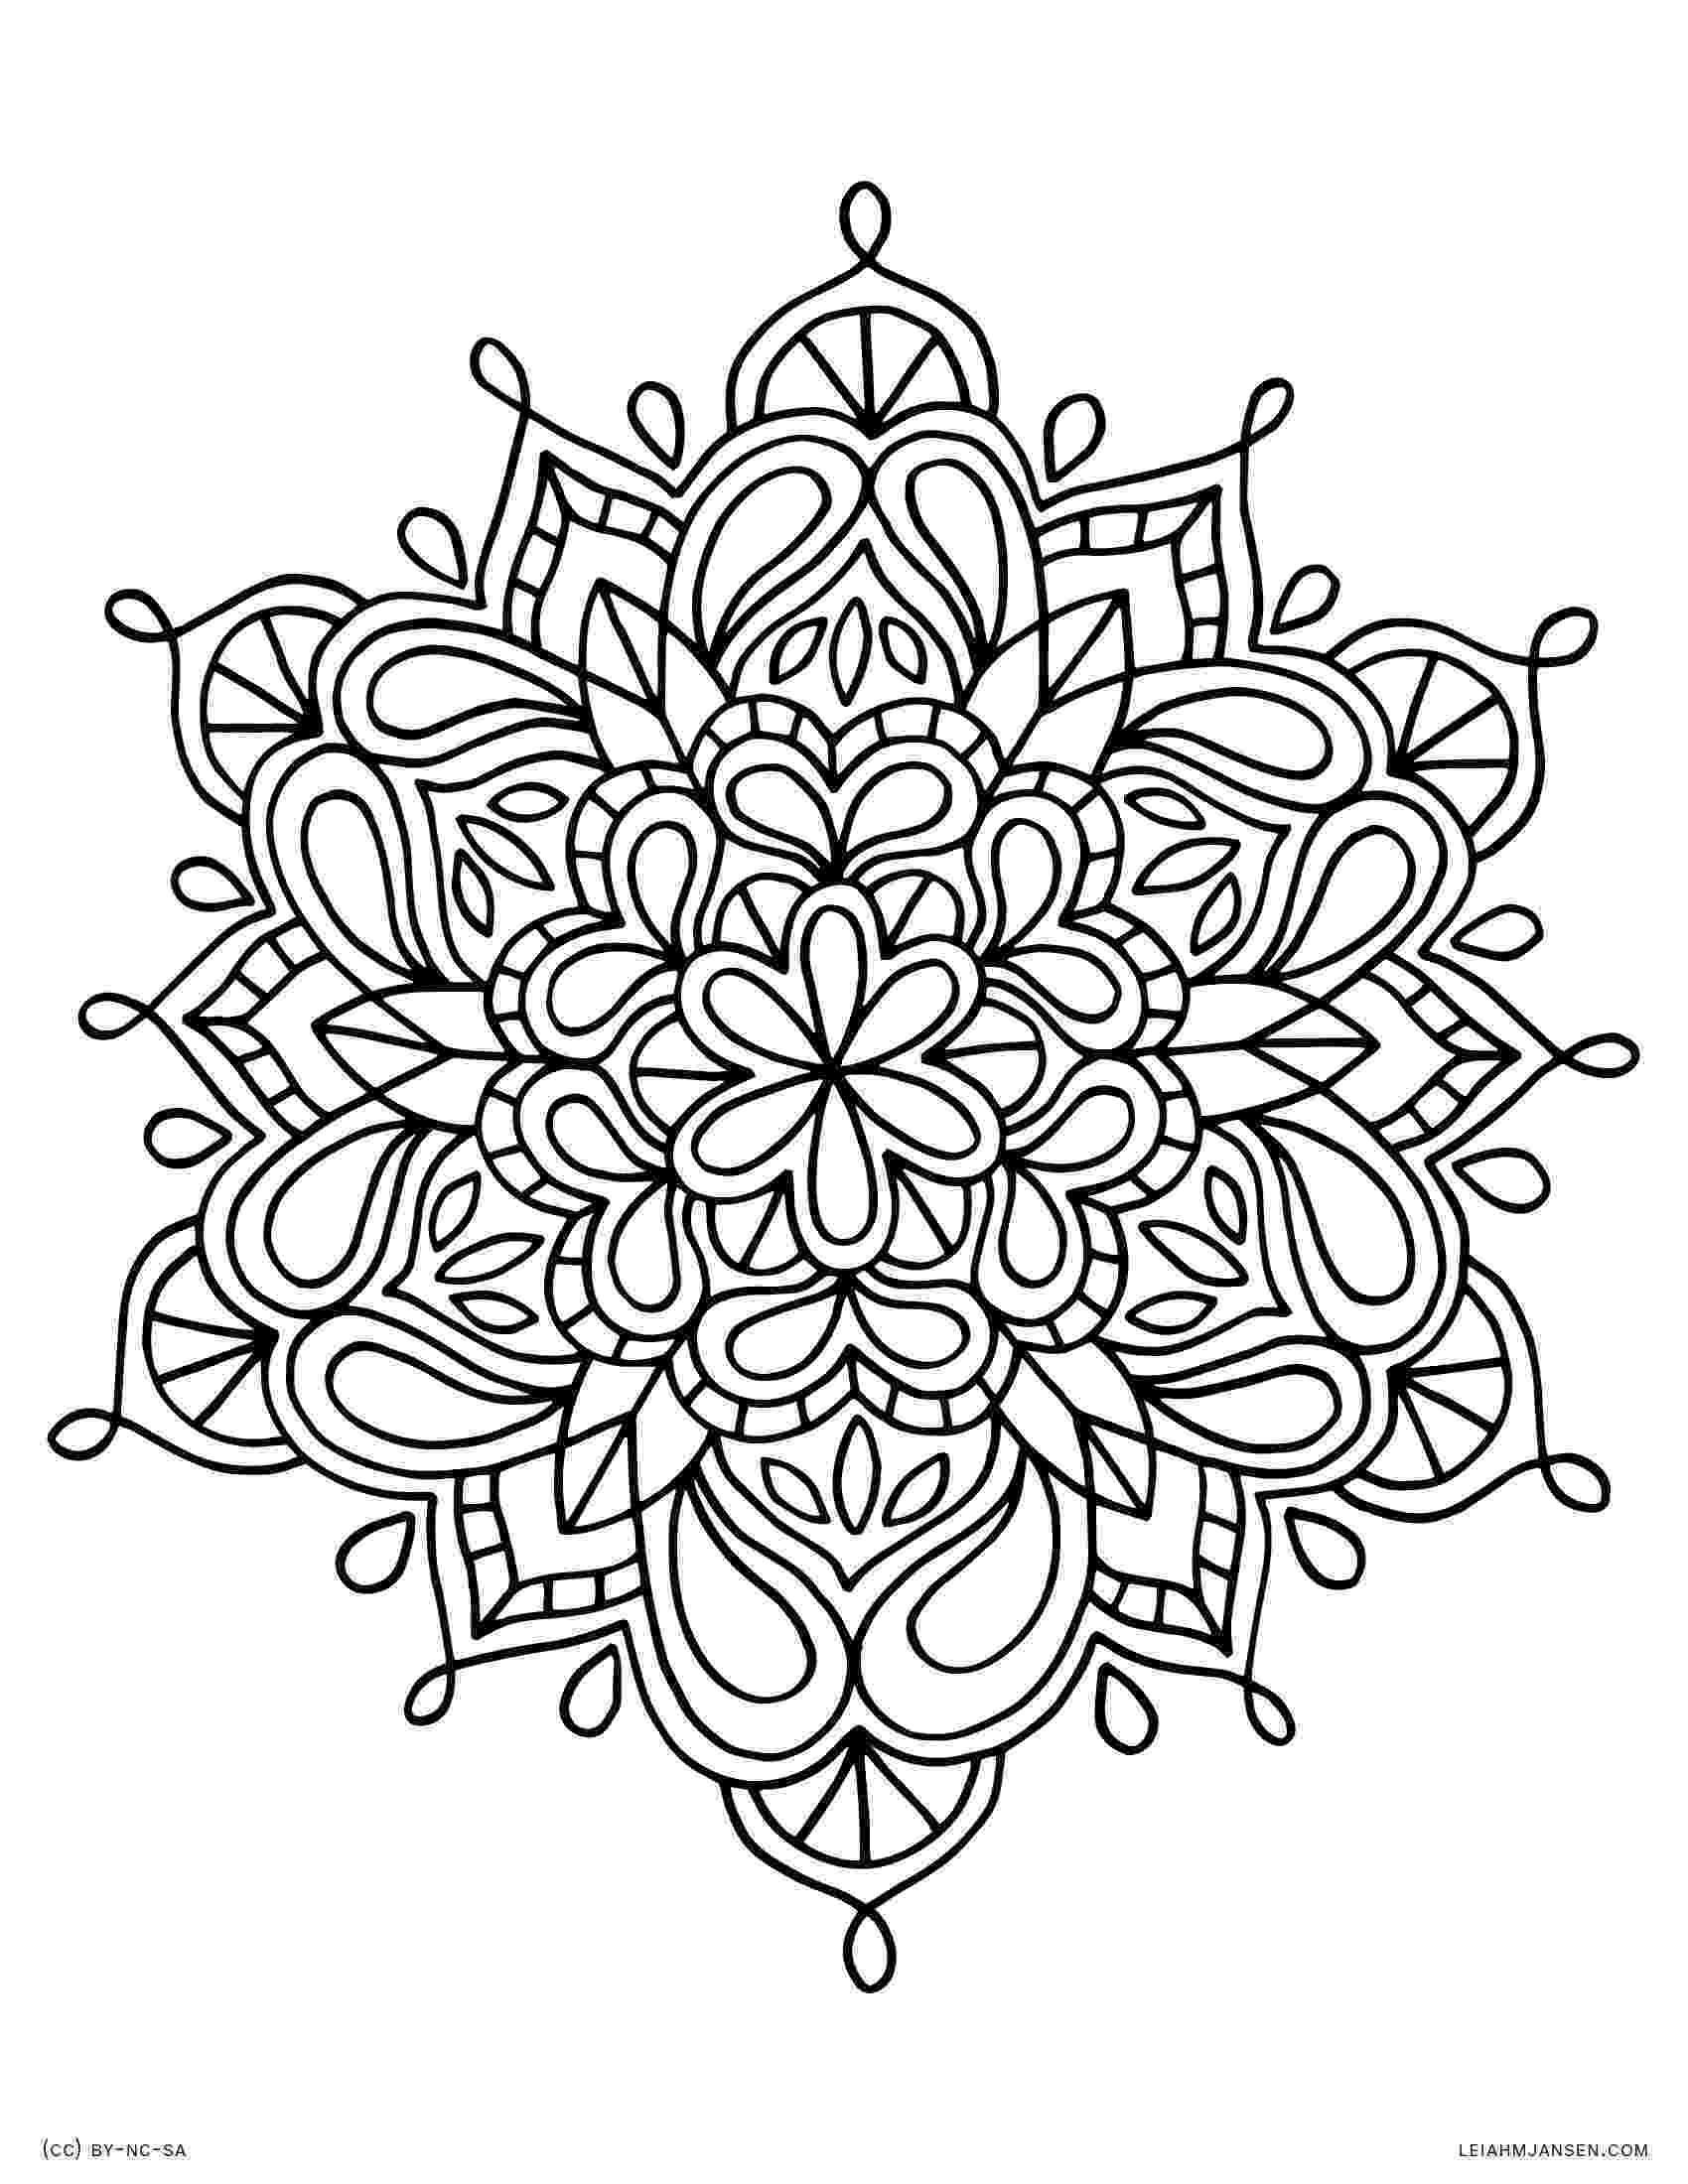 coloring mandalas for adults these printable abstract coloring pages relieve stress and for mandalas coloring adults